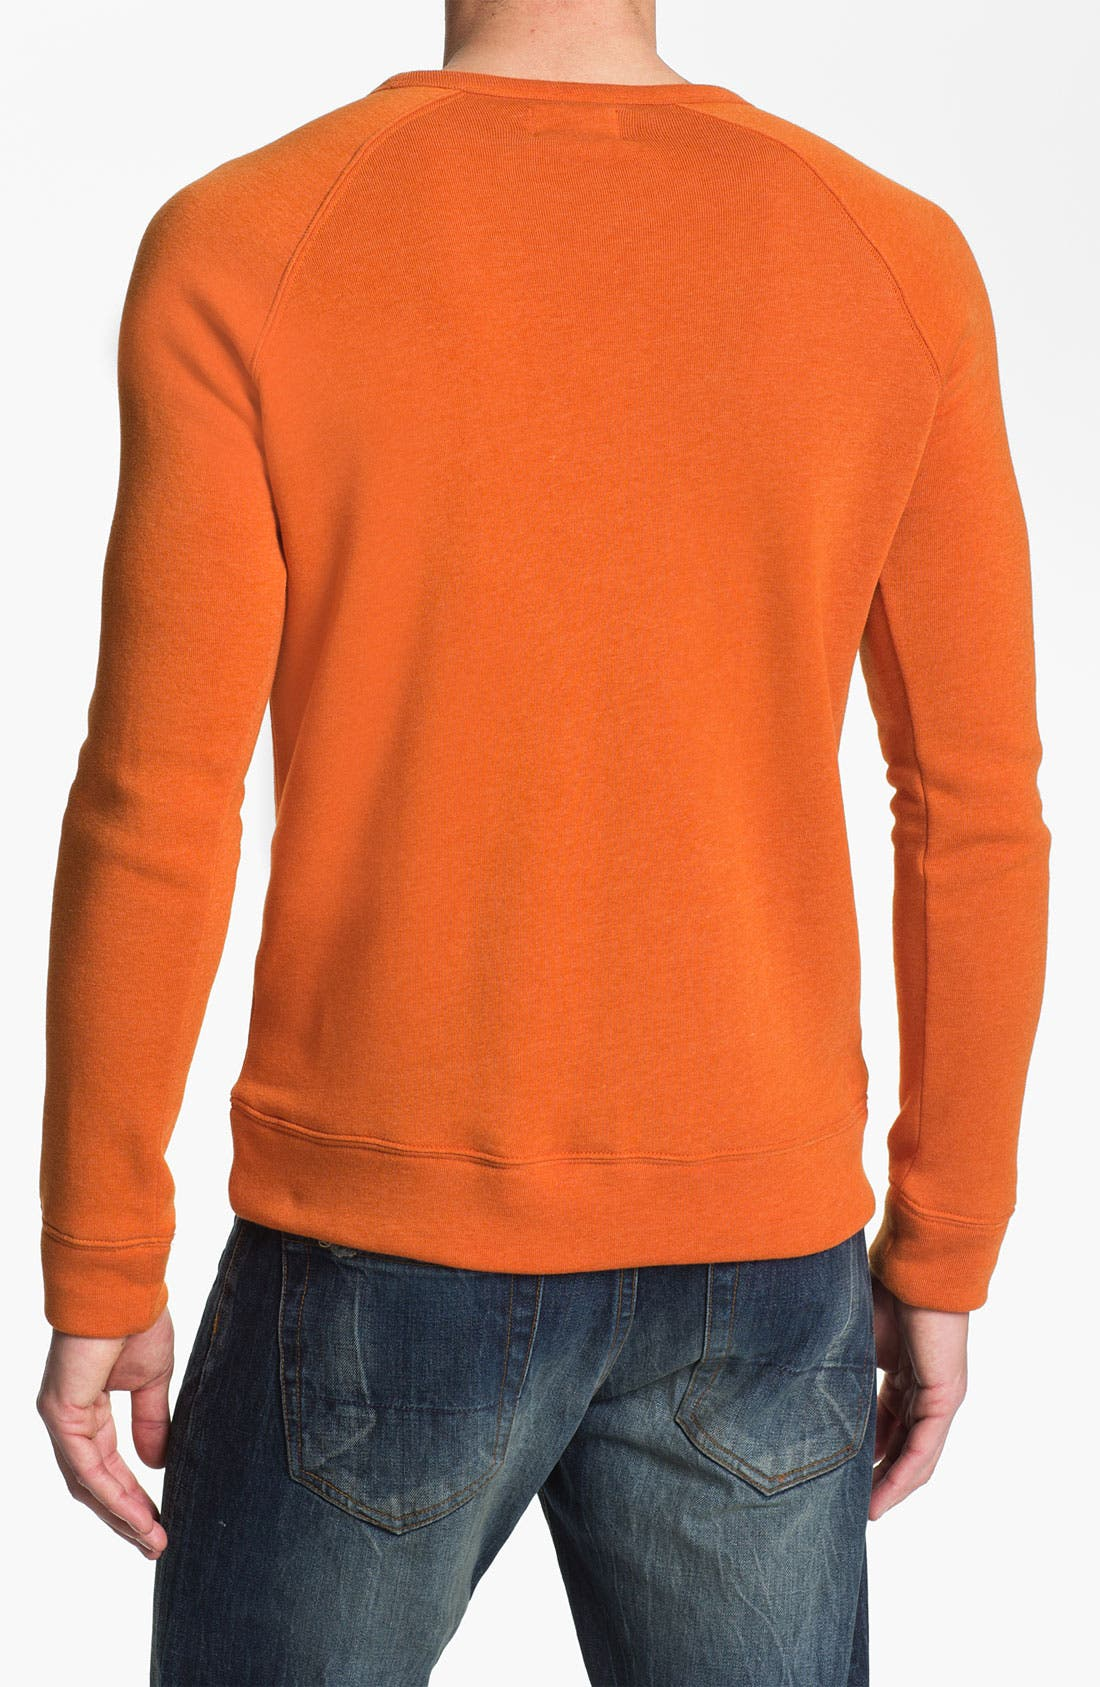 Alternate Image 2  - Obey Lofty Creature Comforts Crewneck Sweatshirt